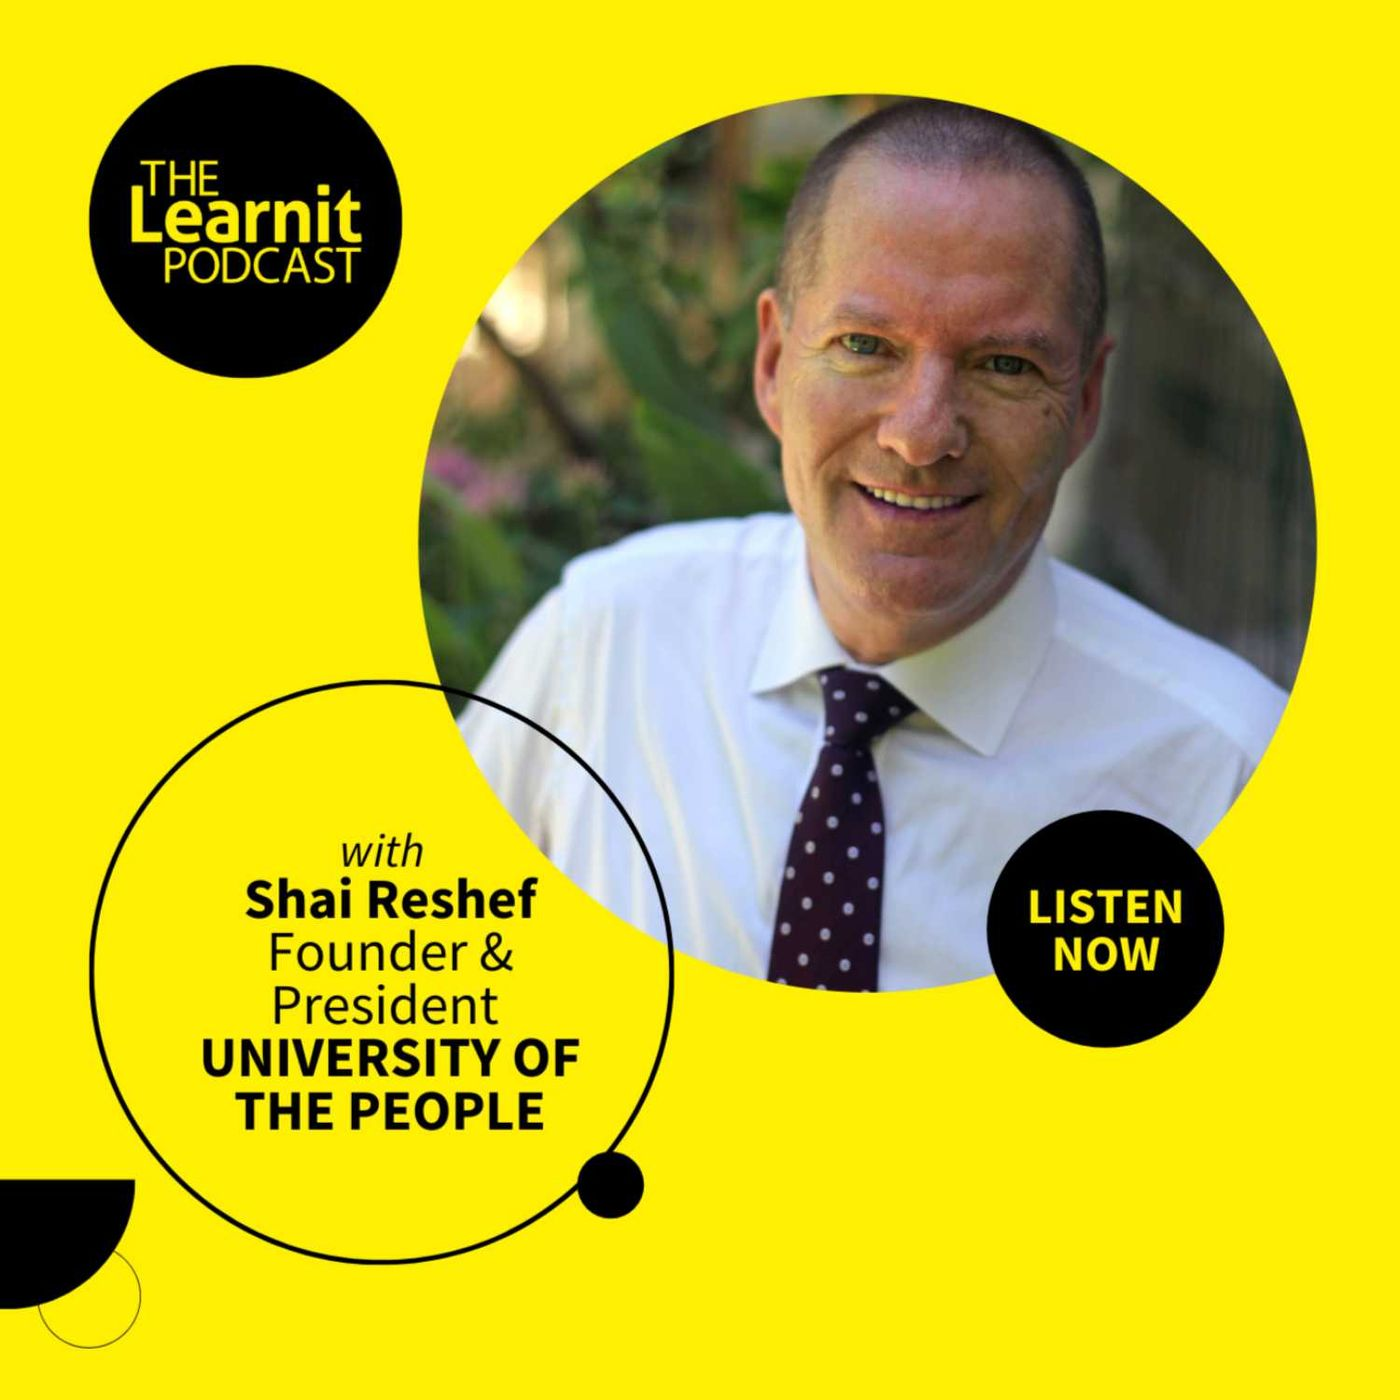 #18 Shai Reshef, University of the People: Delivering higher ed to 53k students on a budget of $13M